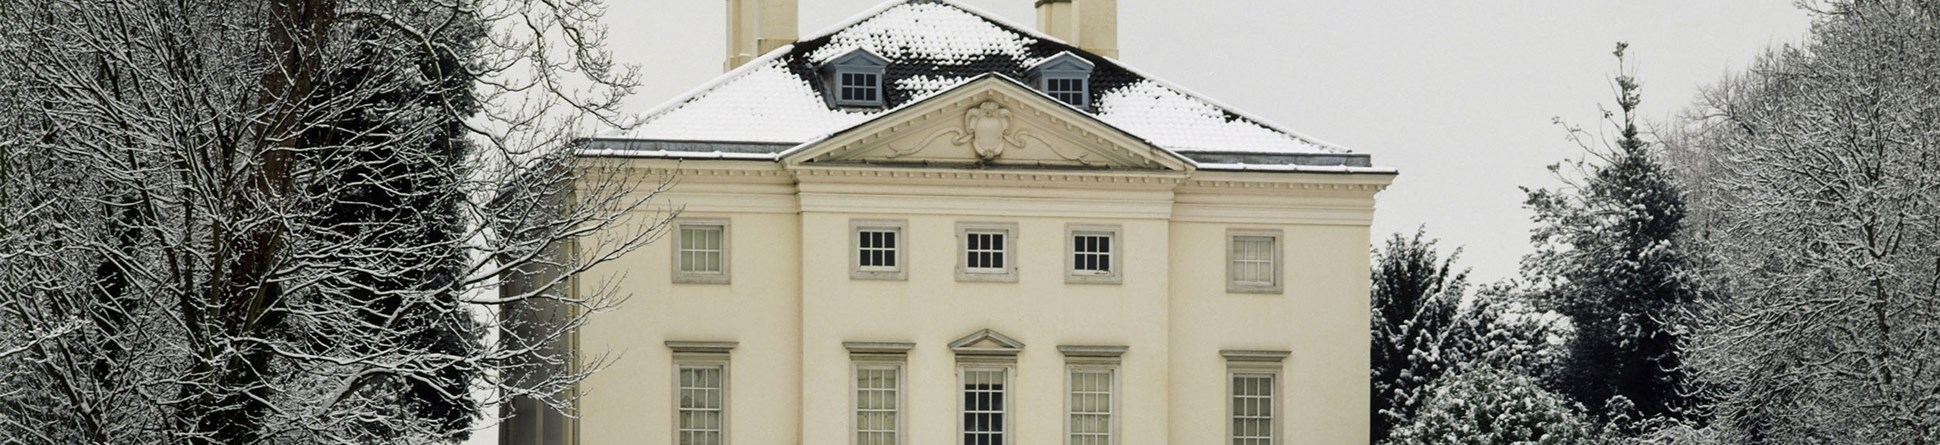 Image of the exterior of Marble Hill House, Richmond, in the snow.